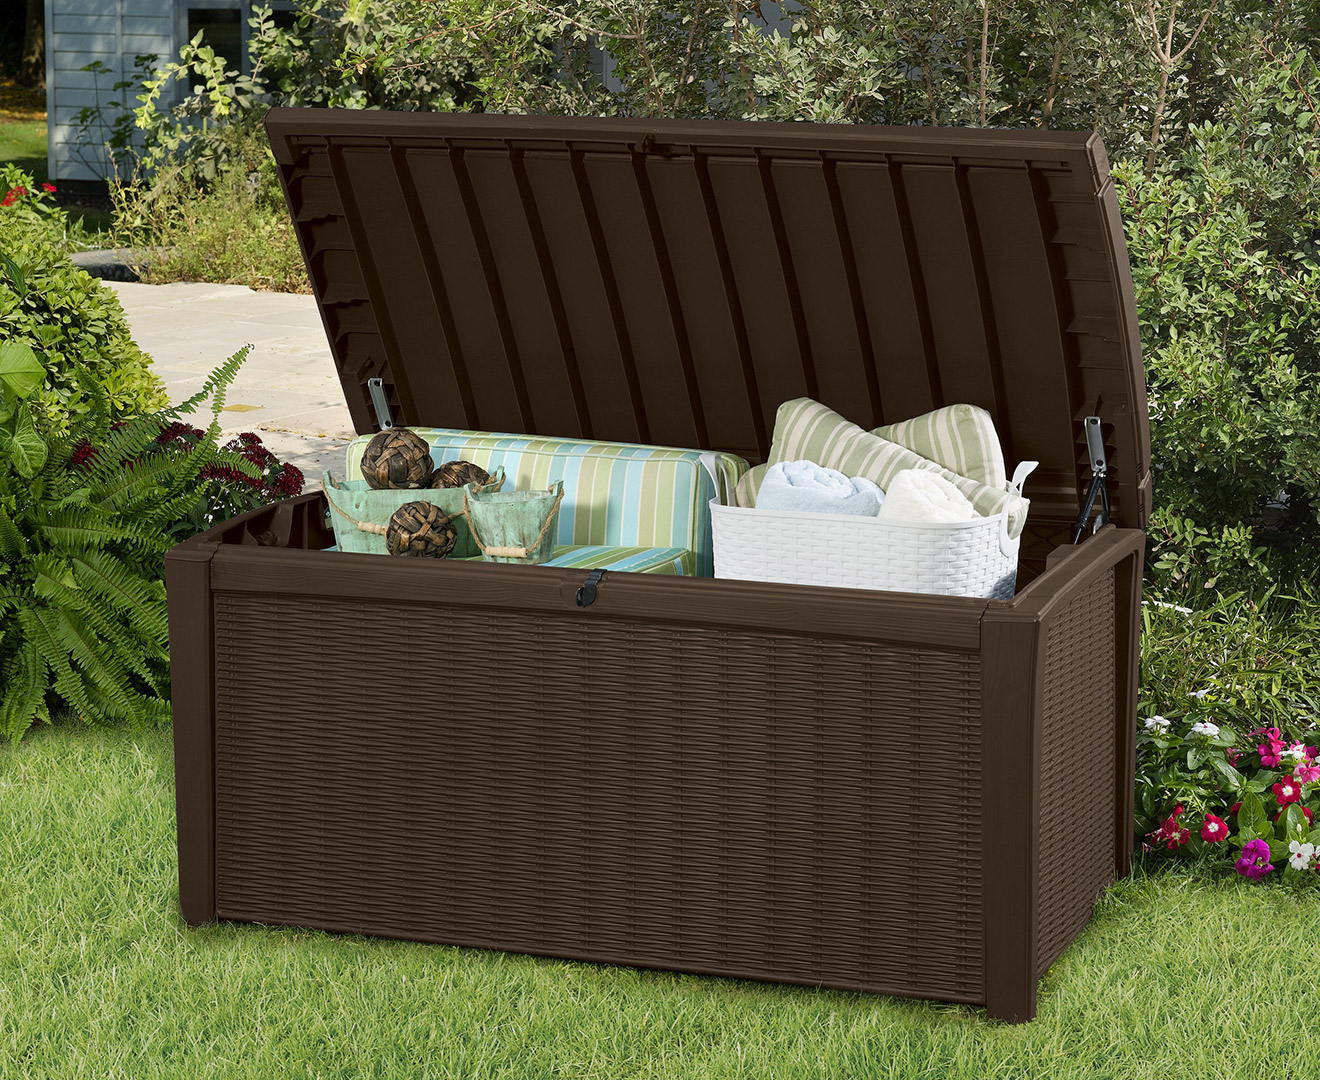 Kissenbox Outdoor Keter 400l Borneo Storage Box Espresso Brown Scoopon